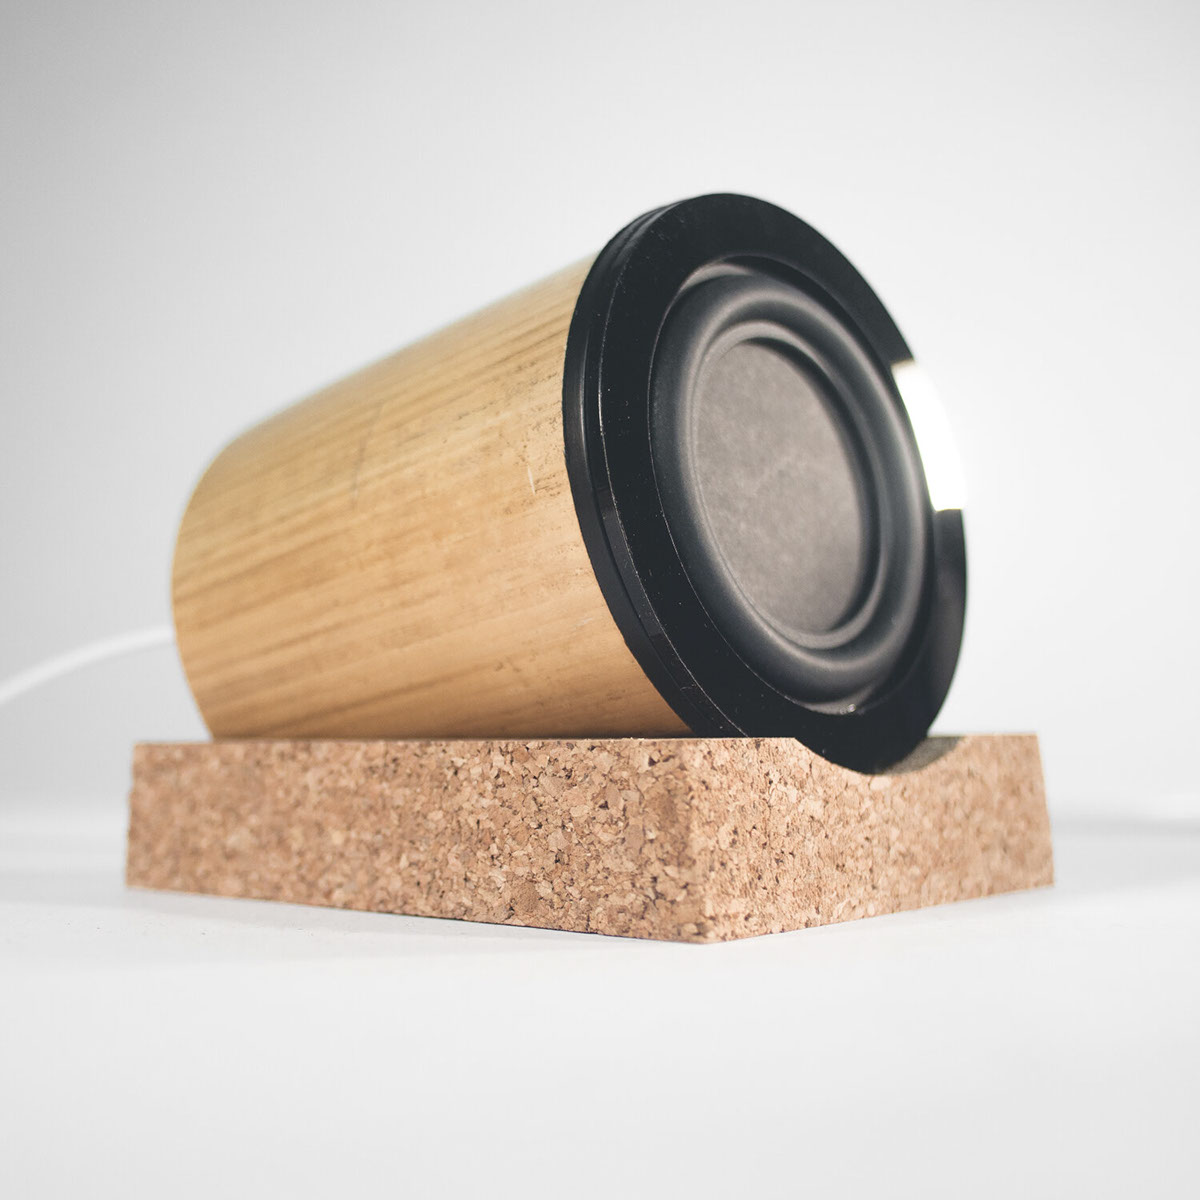 bamboo cork industrial product design manufacturing prototype concept 3D blender Fusion360 model speakers Audio sound